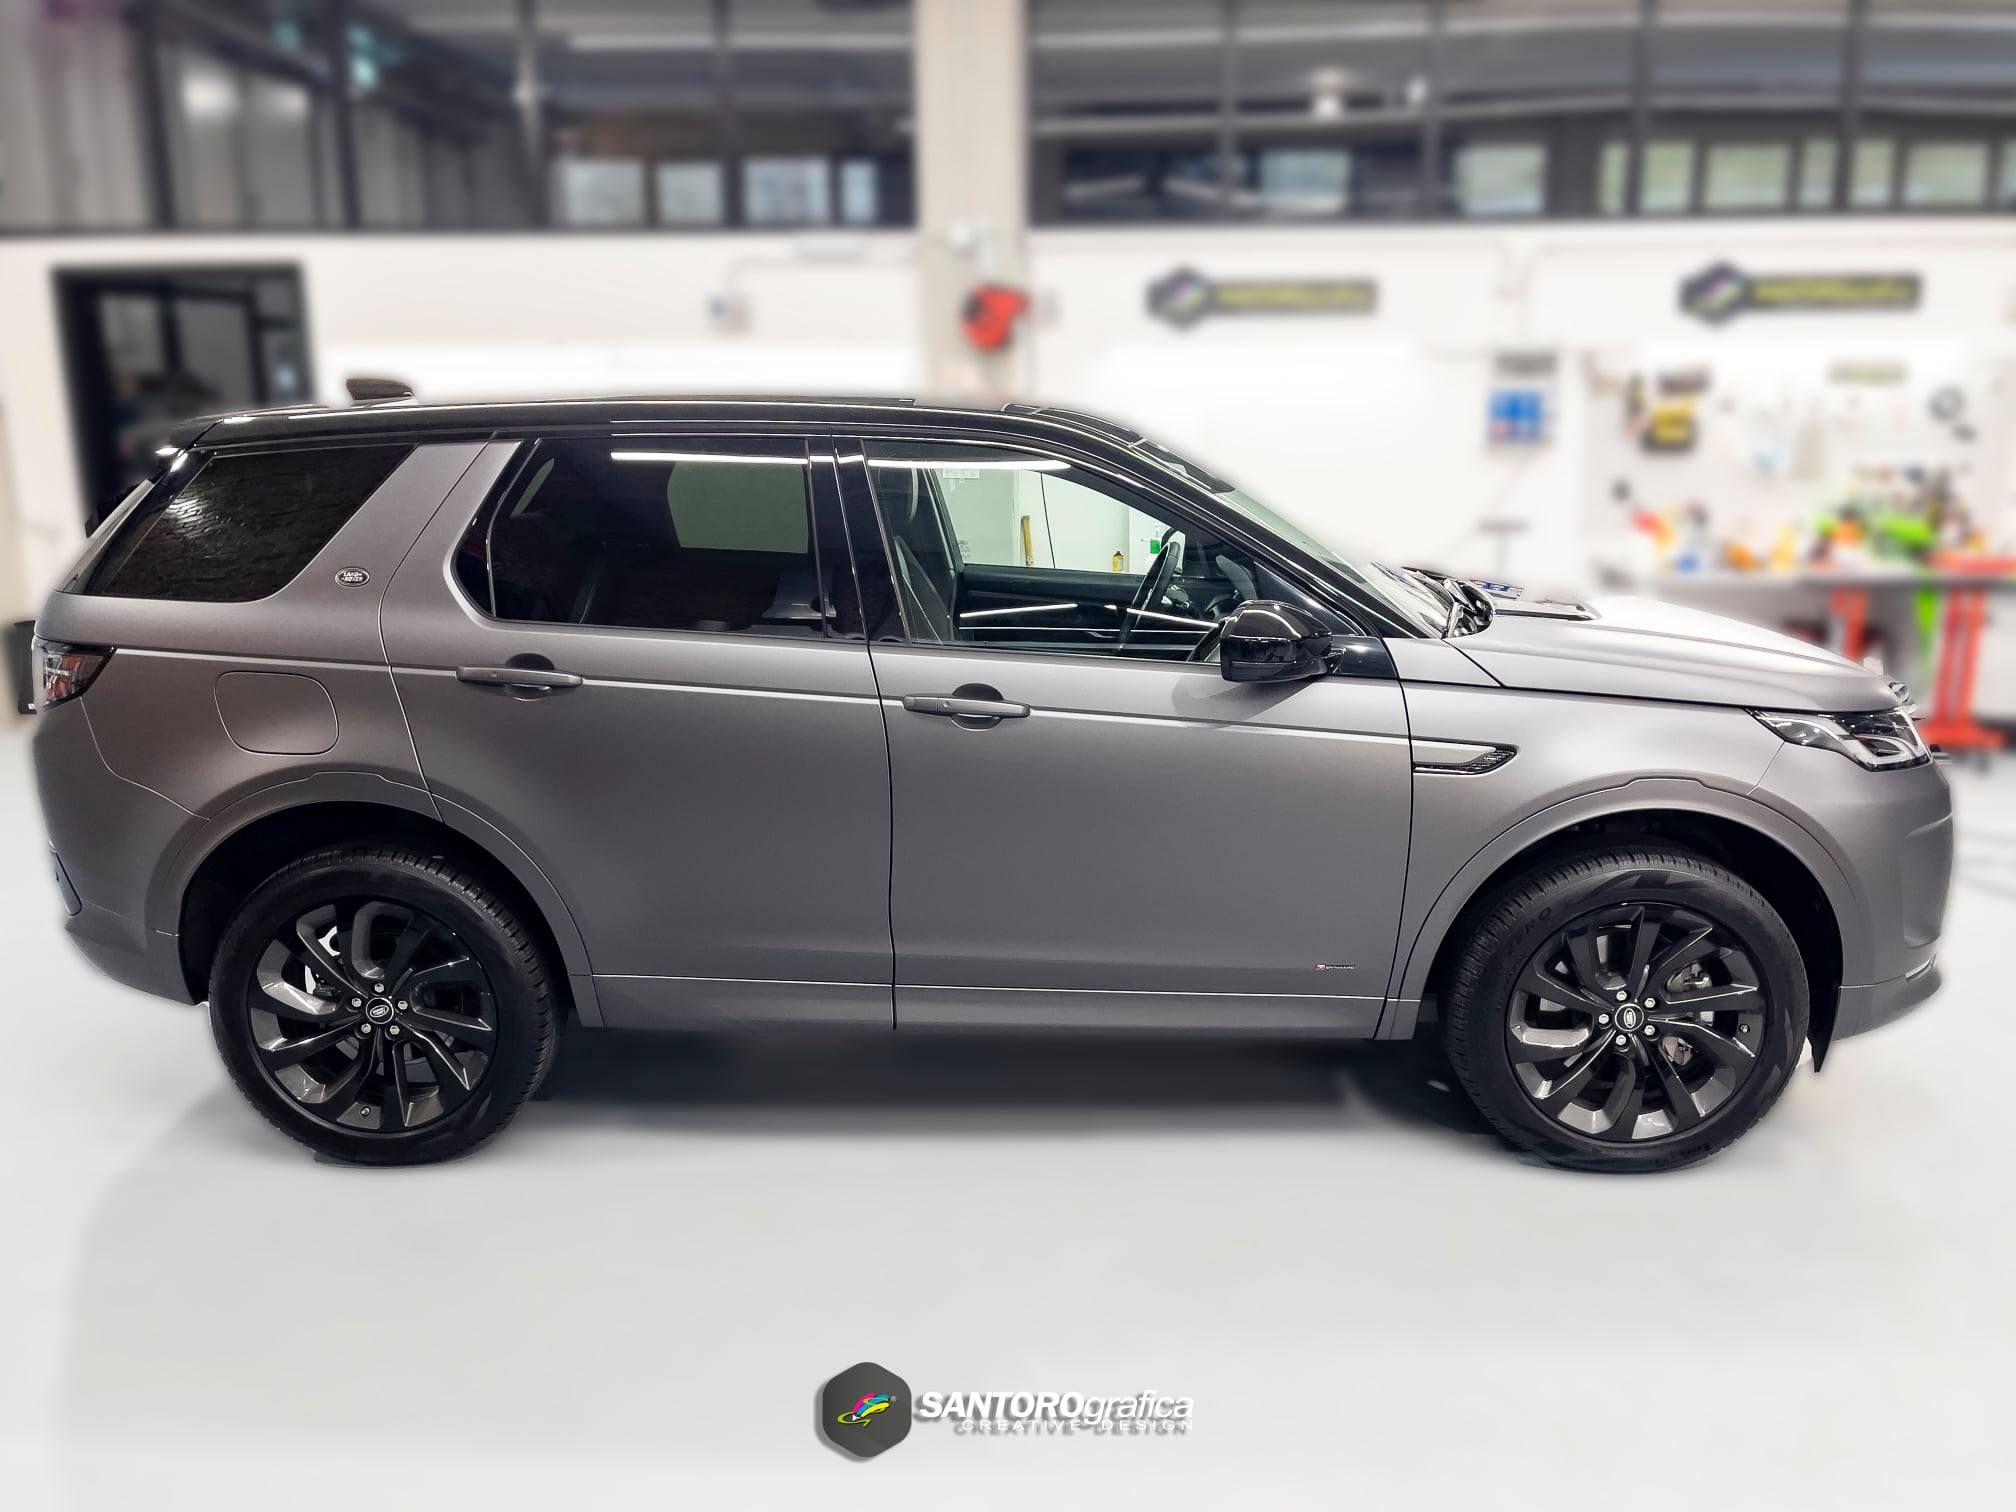 car wrapping land rover discovery grigio 4